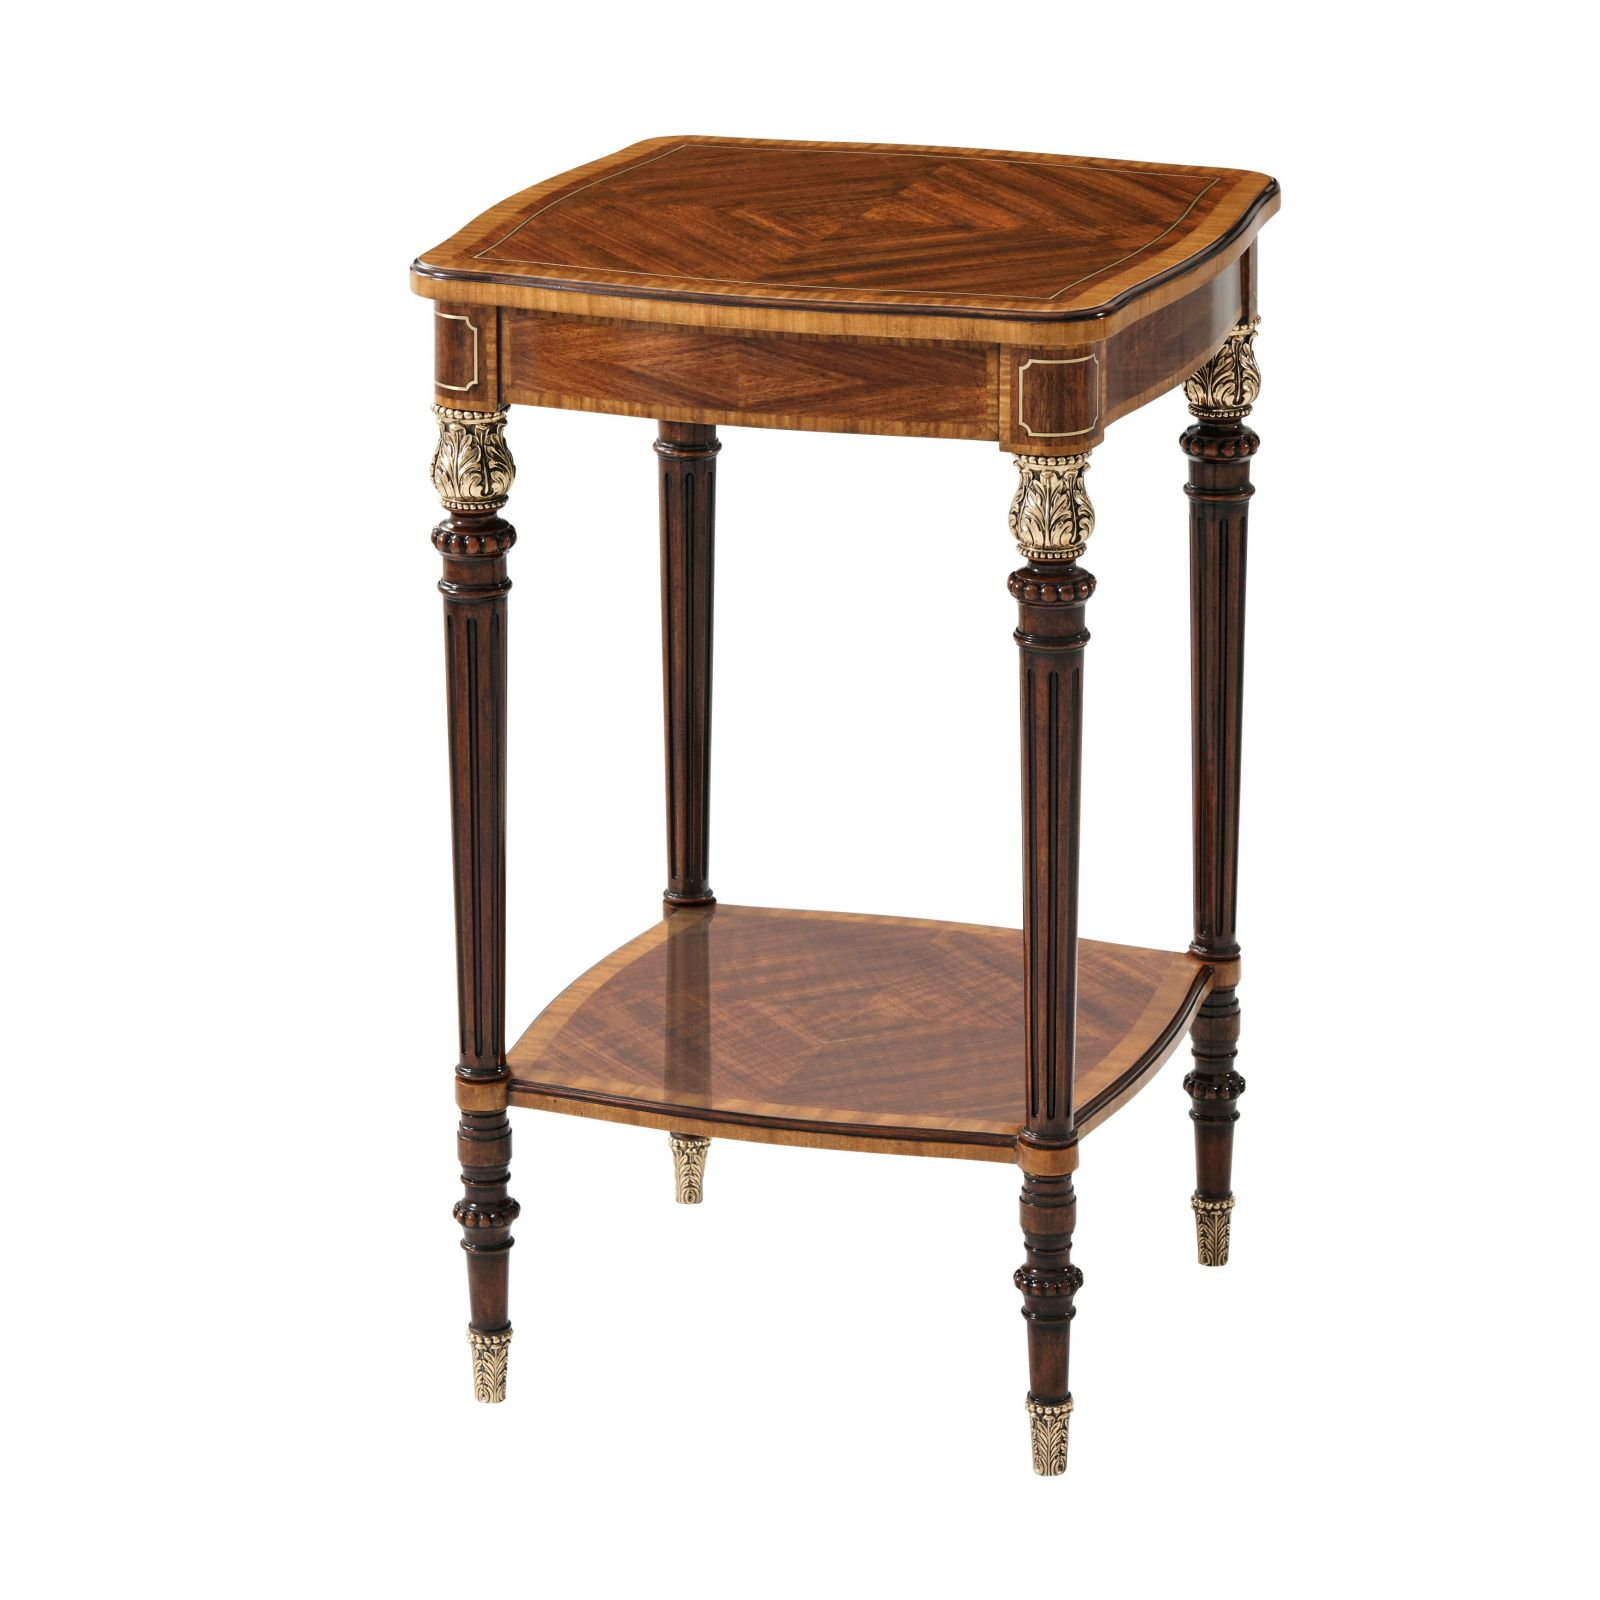 Mahogany and brass side table